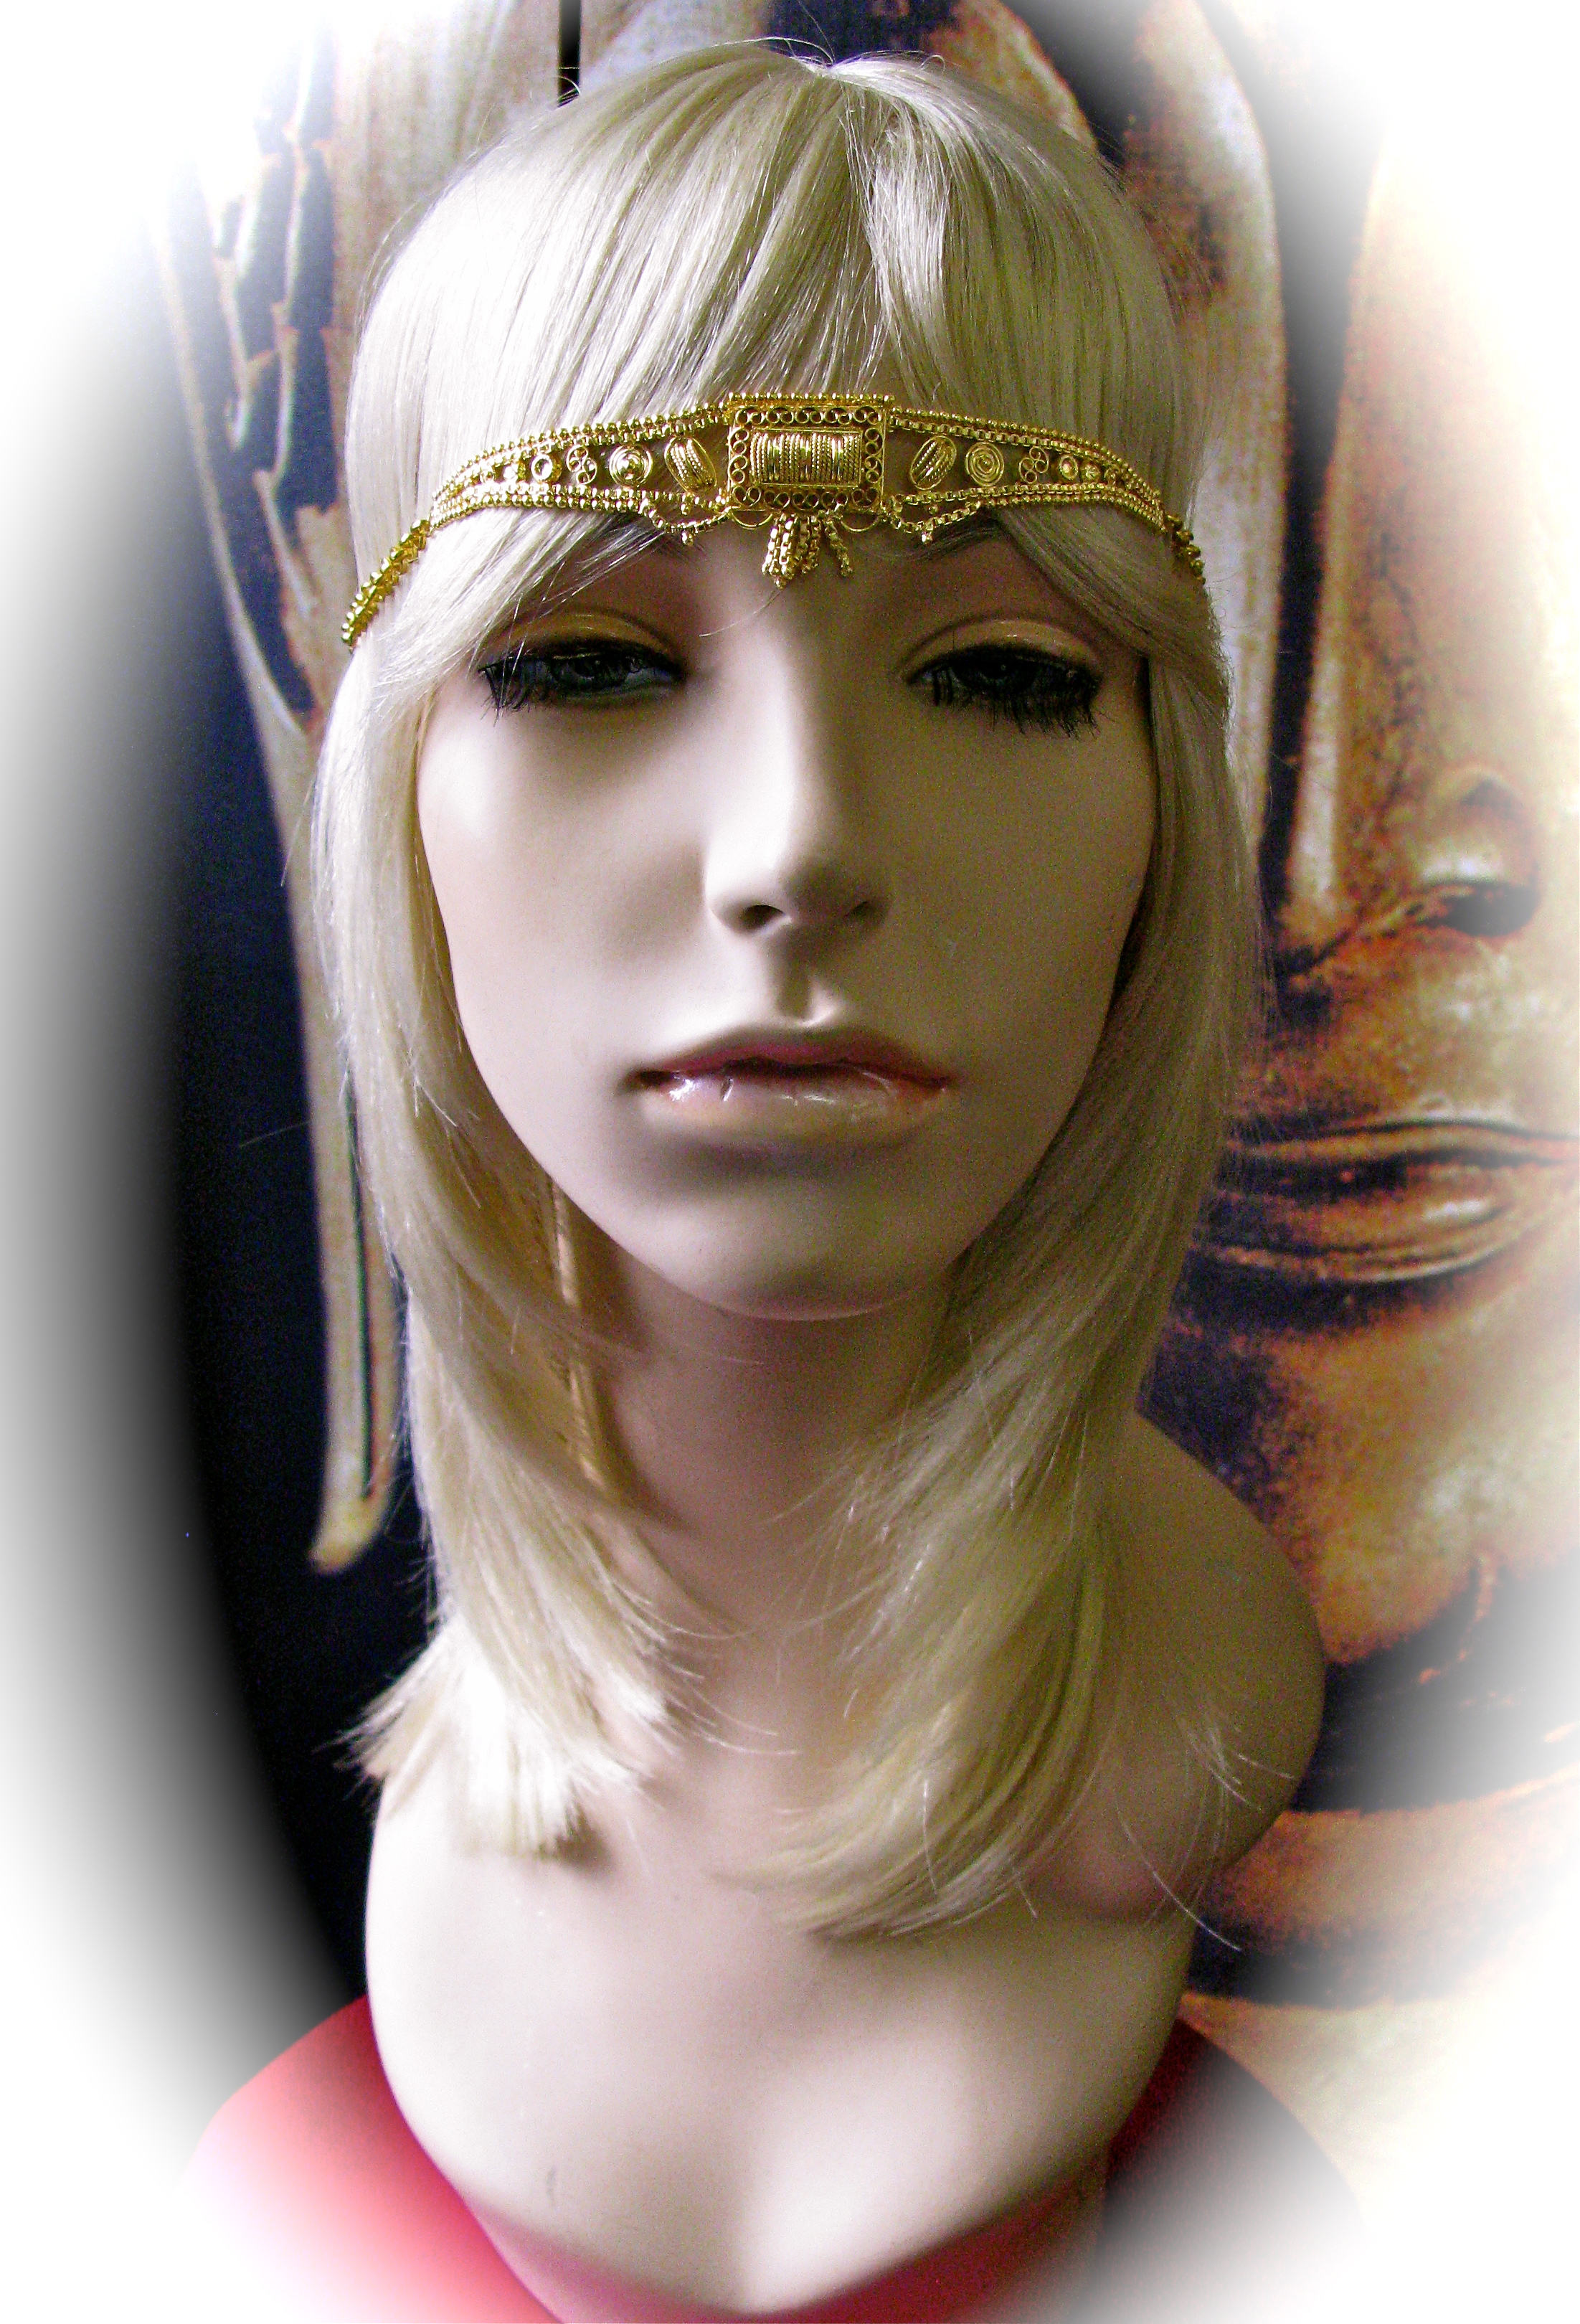 cleopatra headdress bollywood bazaare